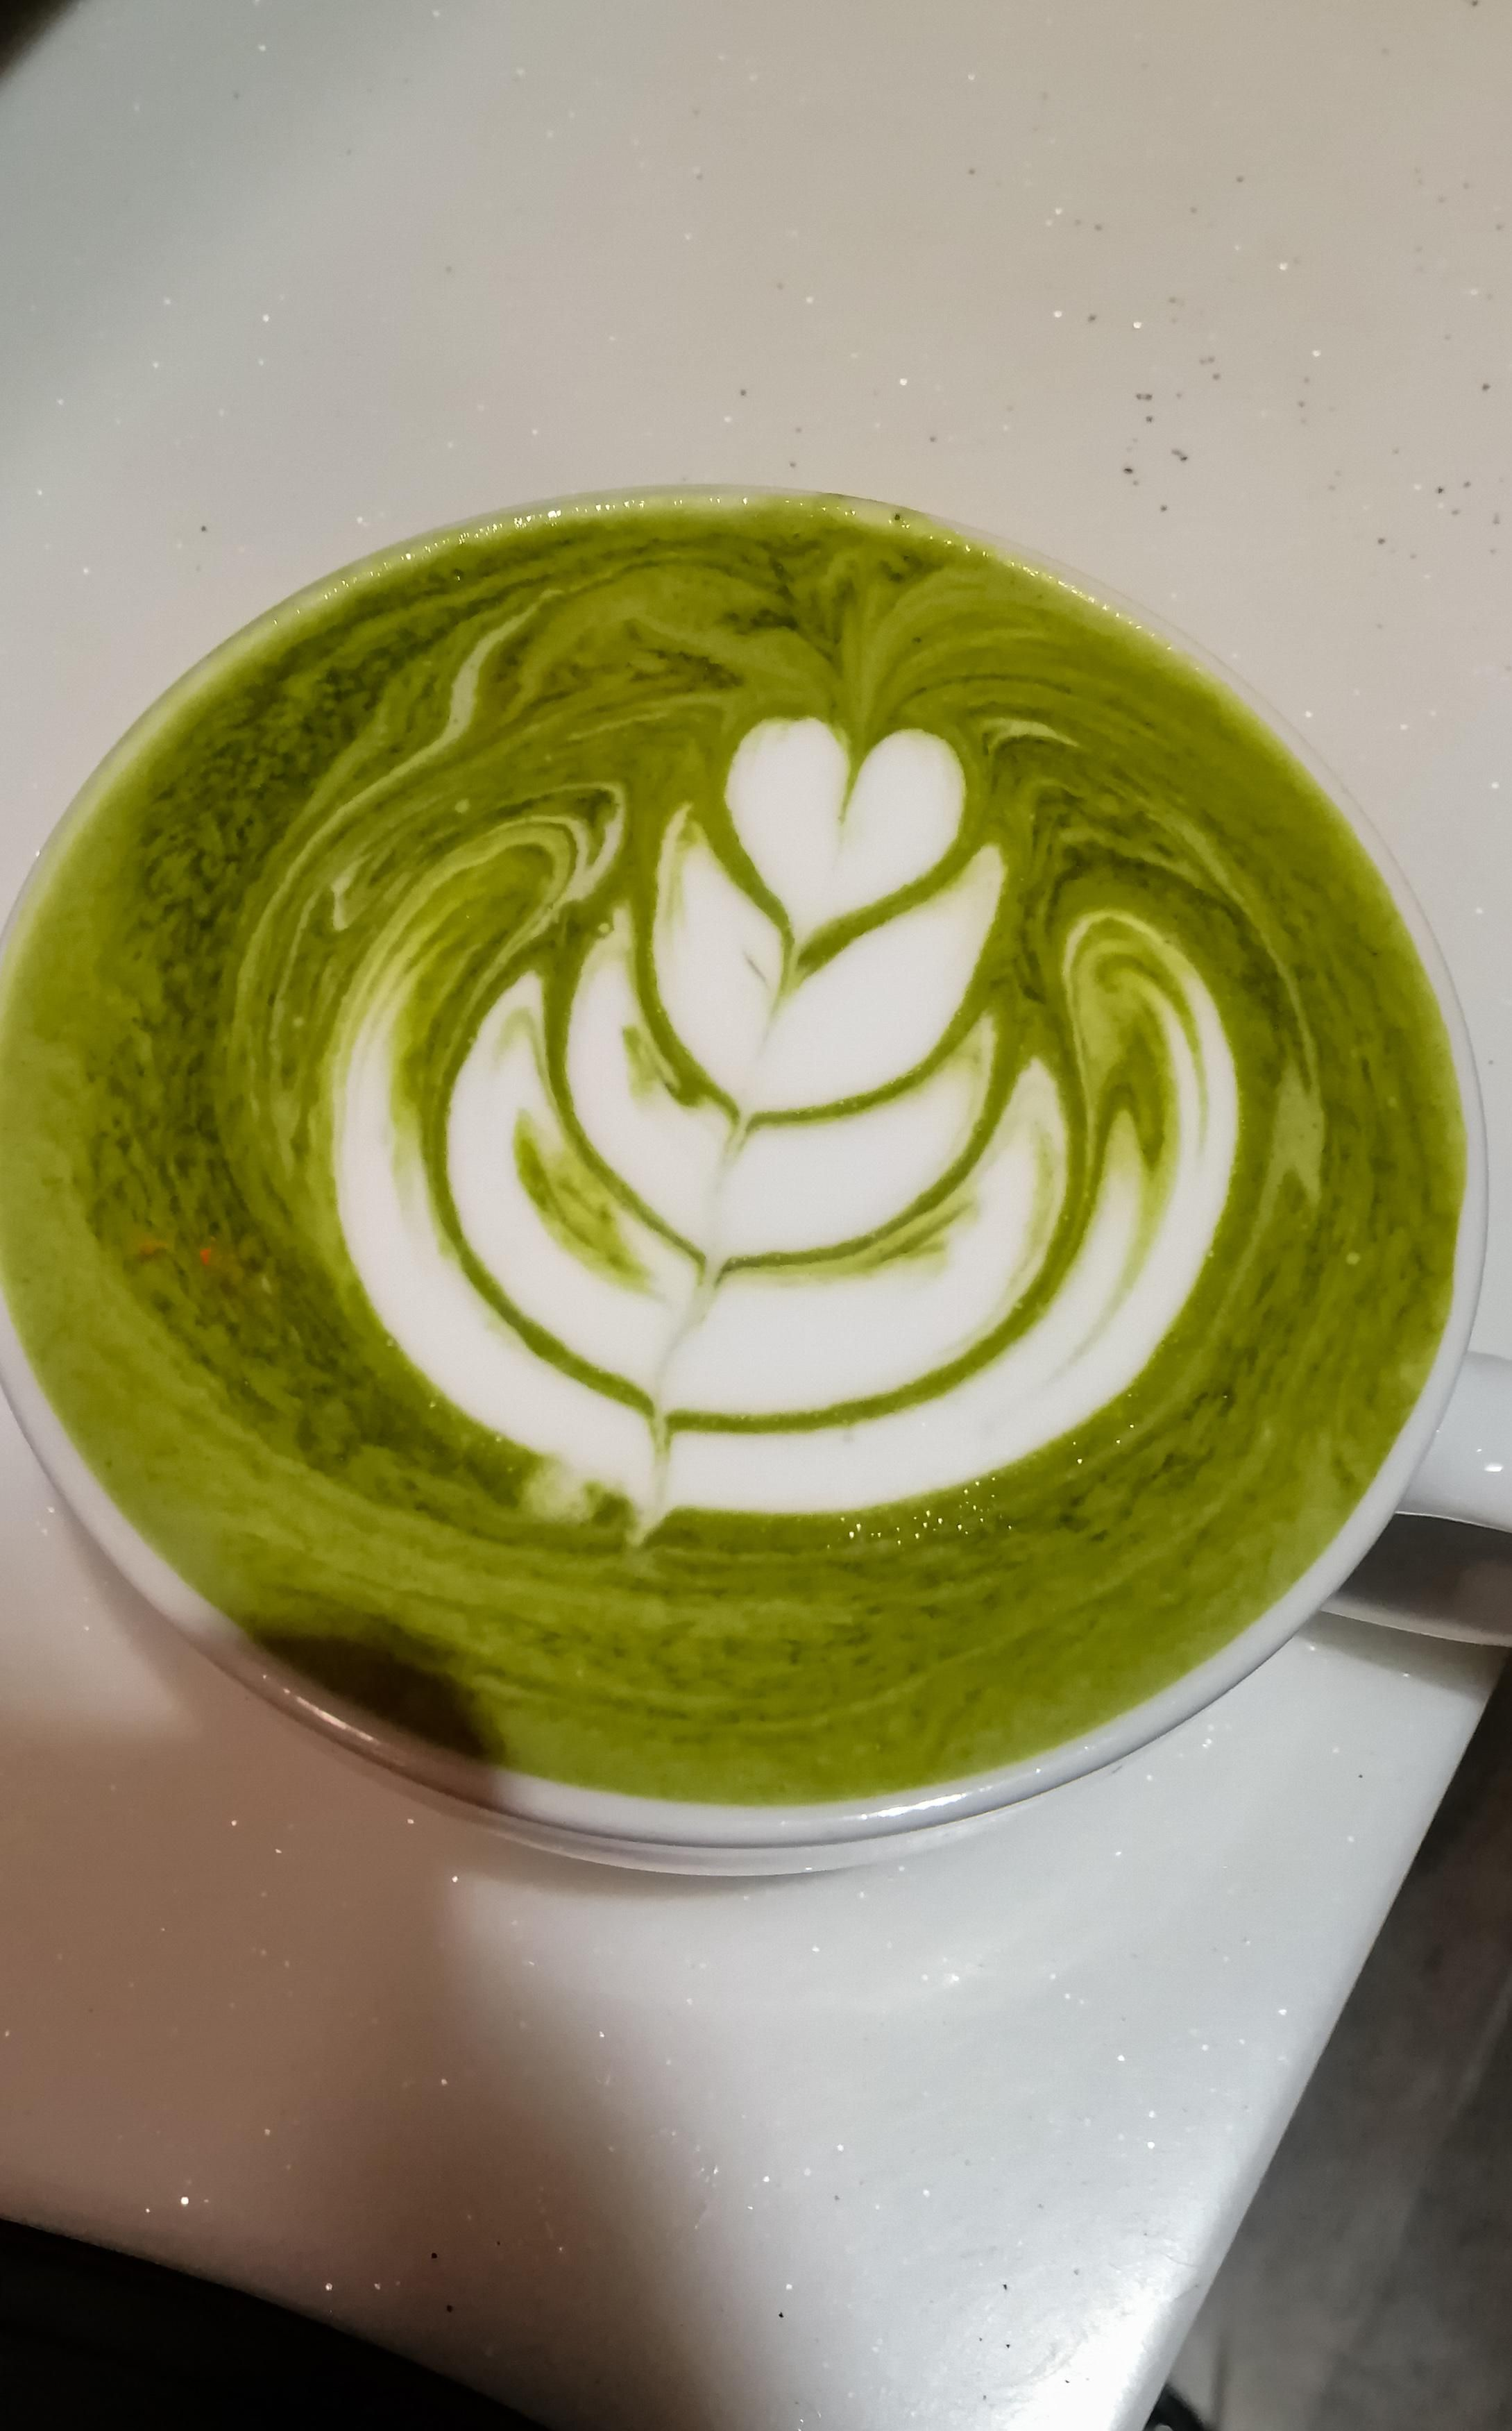 Started A Part Time Job As A Barista A Month Ago My Proudest Pour In A Matcha Latte So Far Matcha Latte Latte Coffee Addict